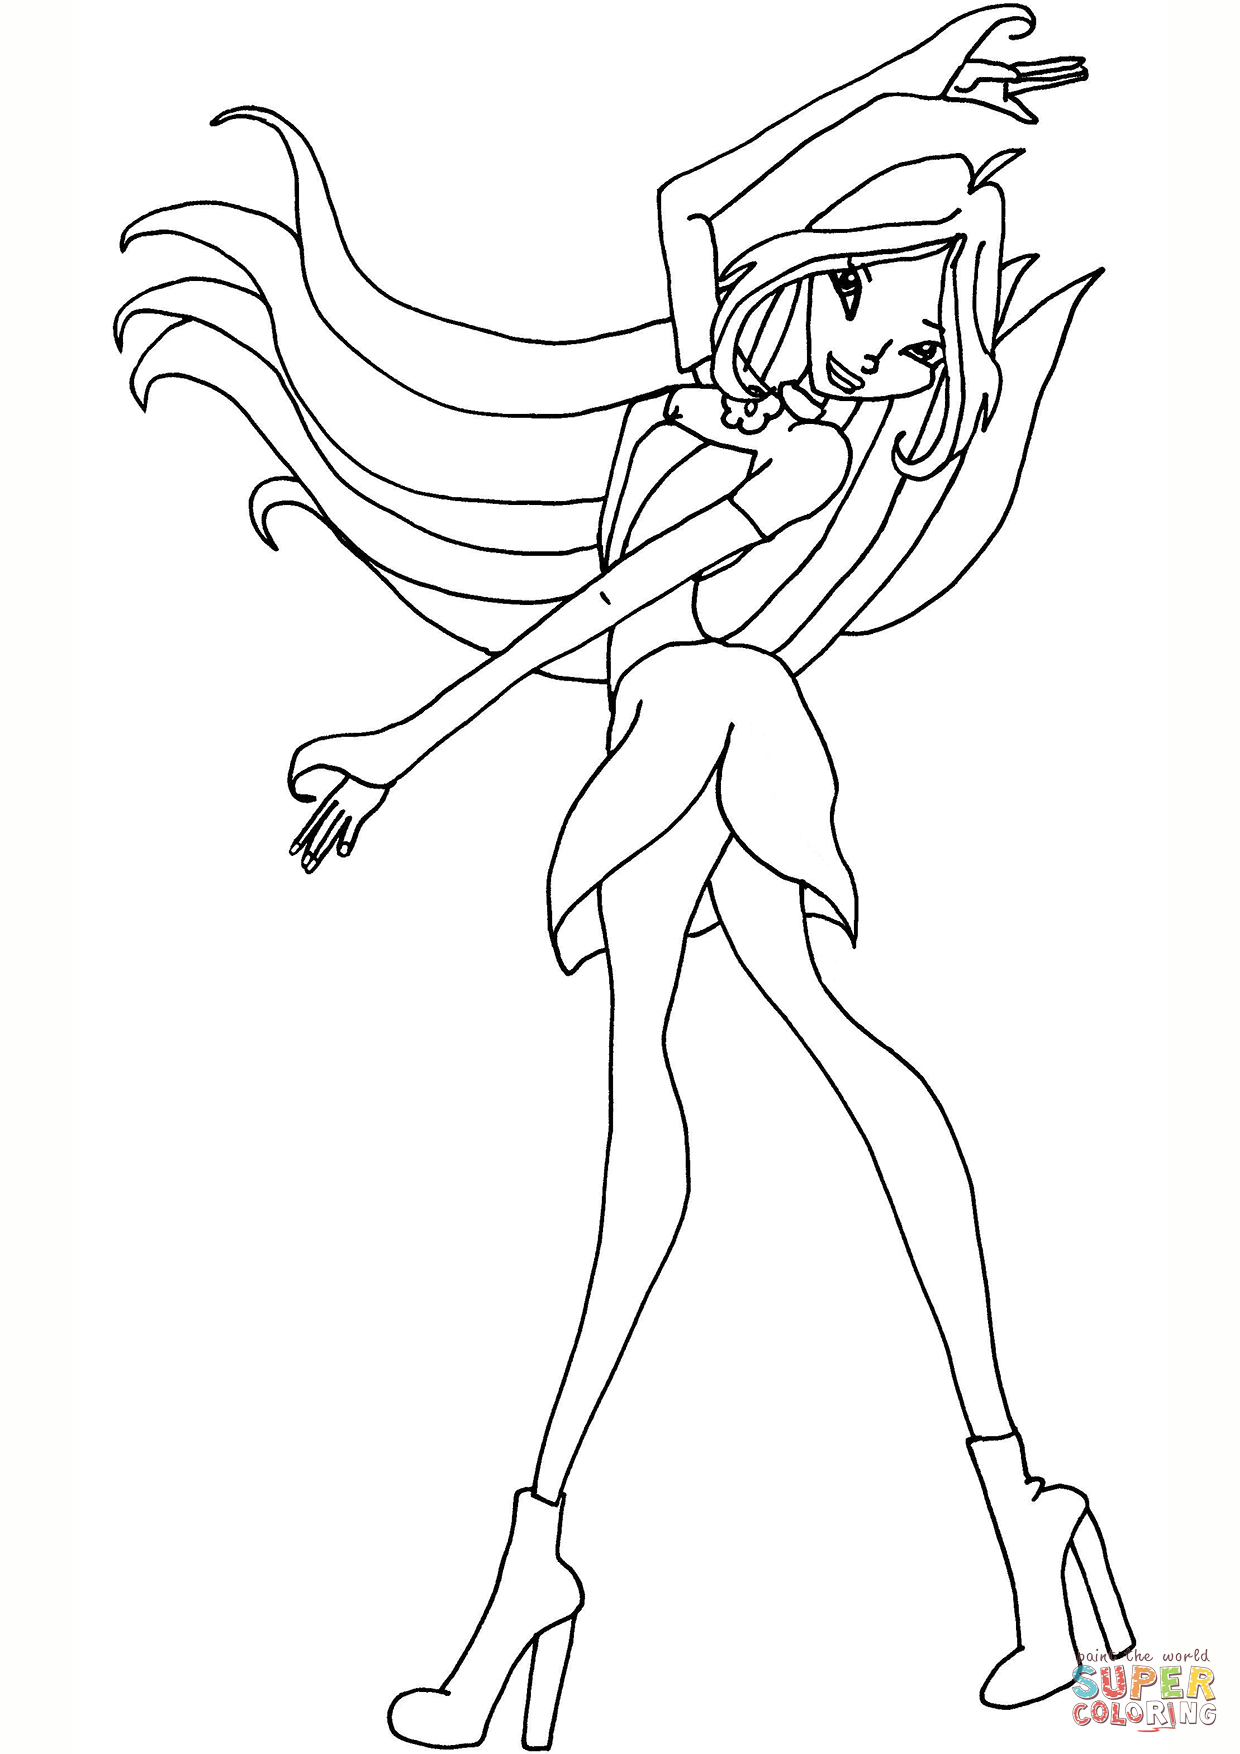 winx club coloring pages flora flora winx club coloring pages for girls printable free coloring flora club pages winx